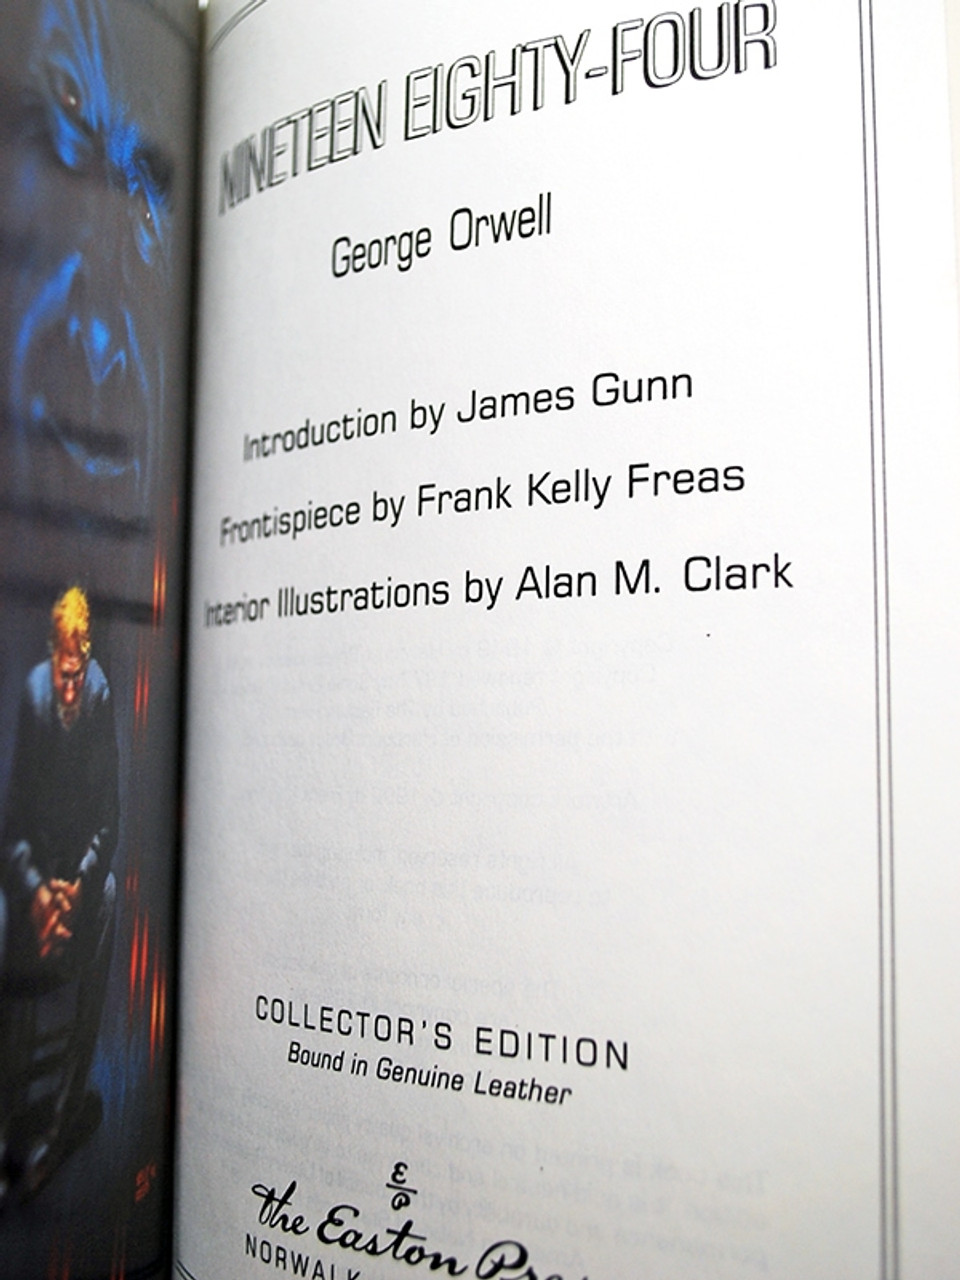 """George Orwell """"Nineteen Eighty-Four"""" Leather Bound Collector's Edition [Very Fine]"""